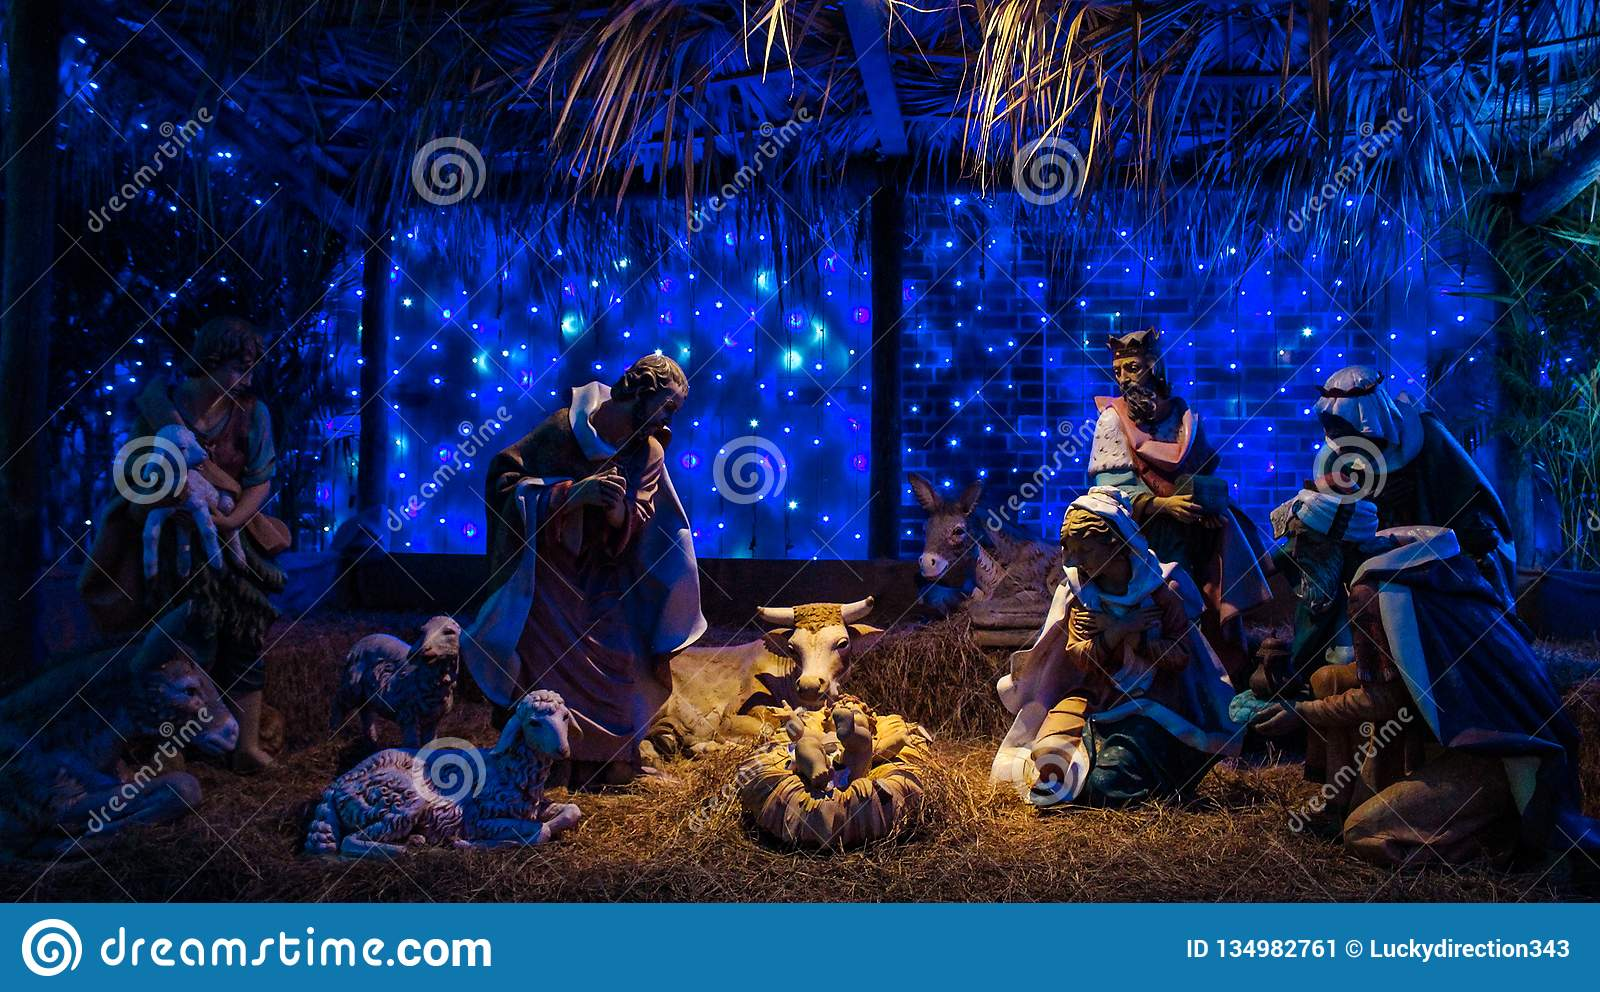 Jesus God Decoration On Christmas Day Lighting Hat Stock Image Image Of Christ Lighting 134982761